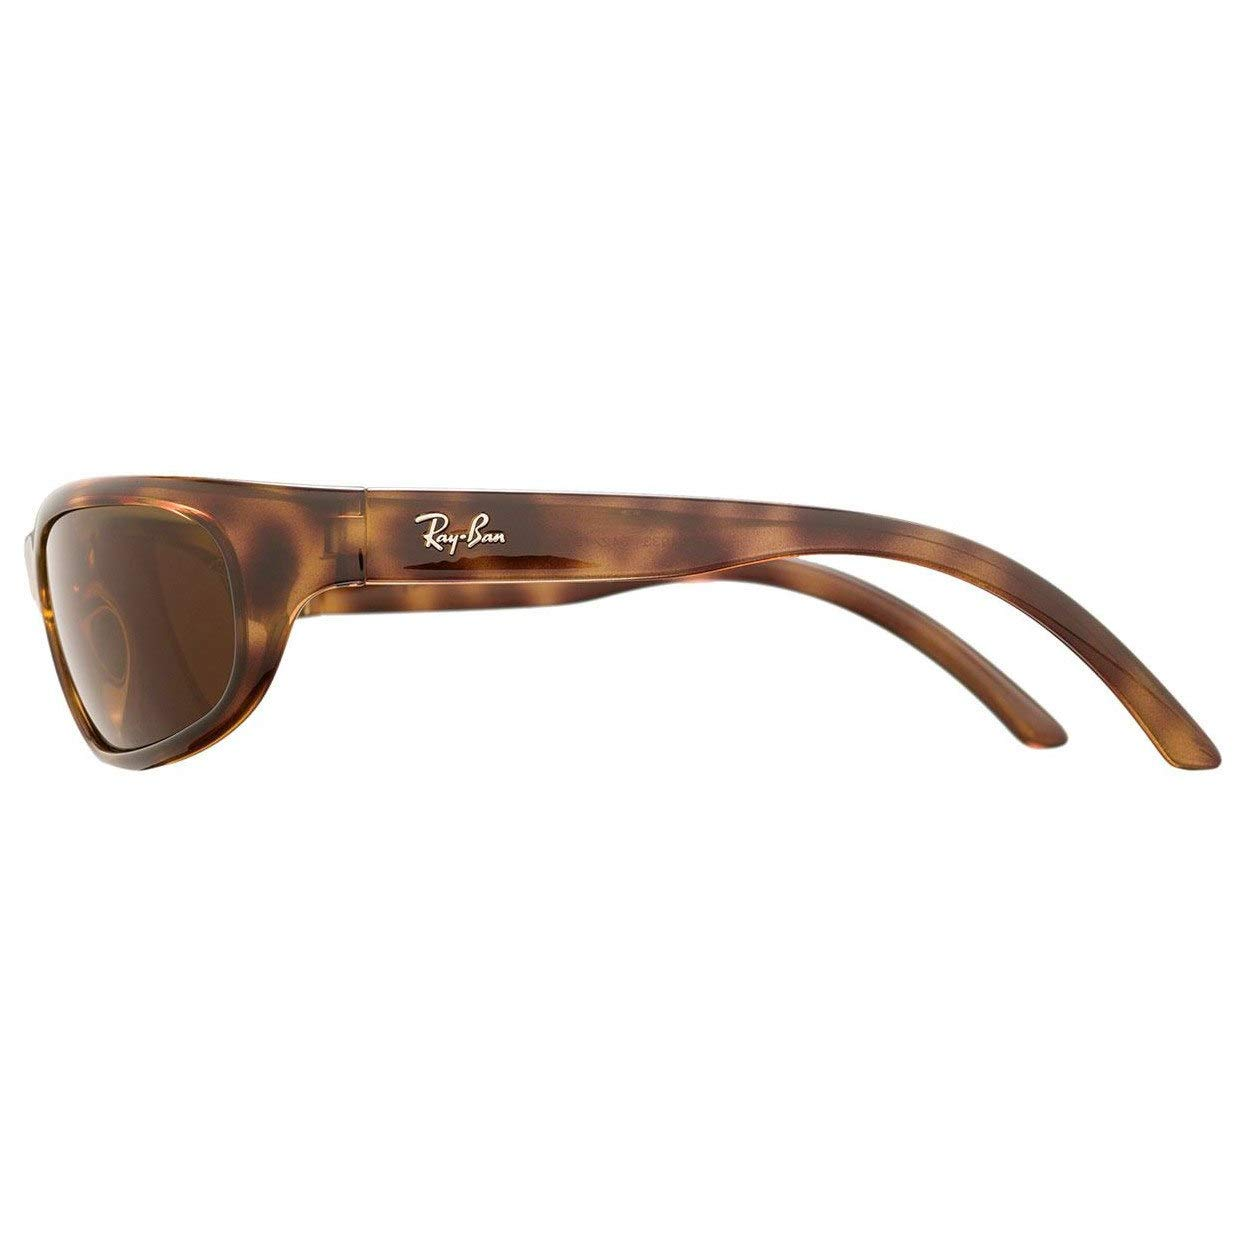 698df075d4 Amazon.com  Ray-Ban RB4033 642 73 Sunglasses Tortoise Brown Frame w  Brown  Lens   Clothing